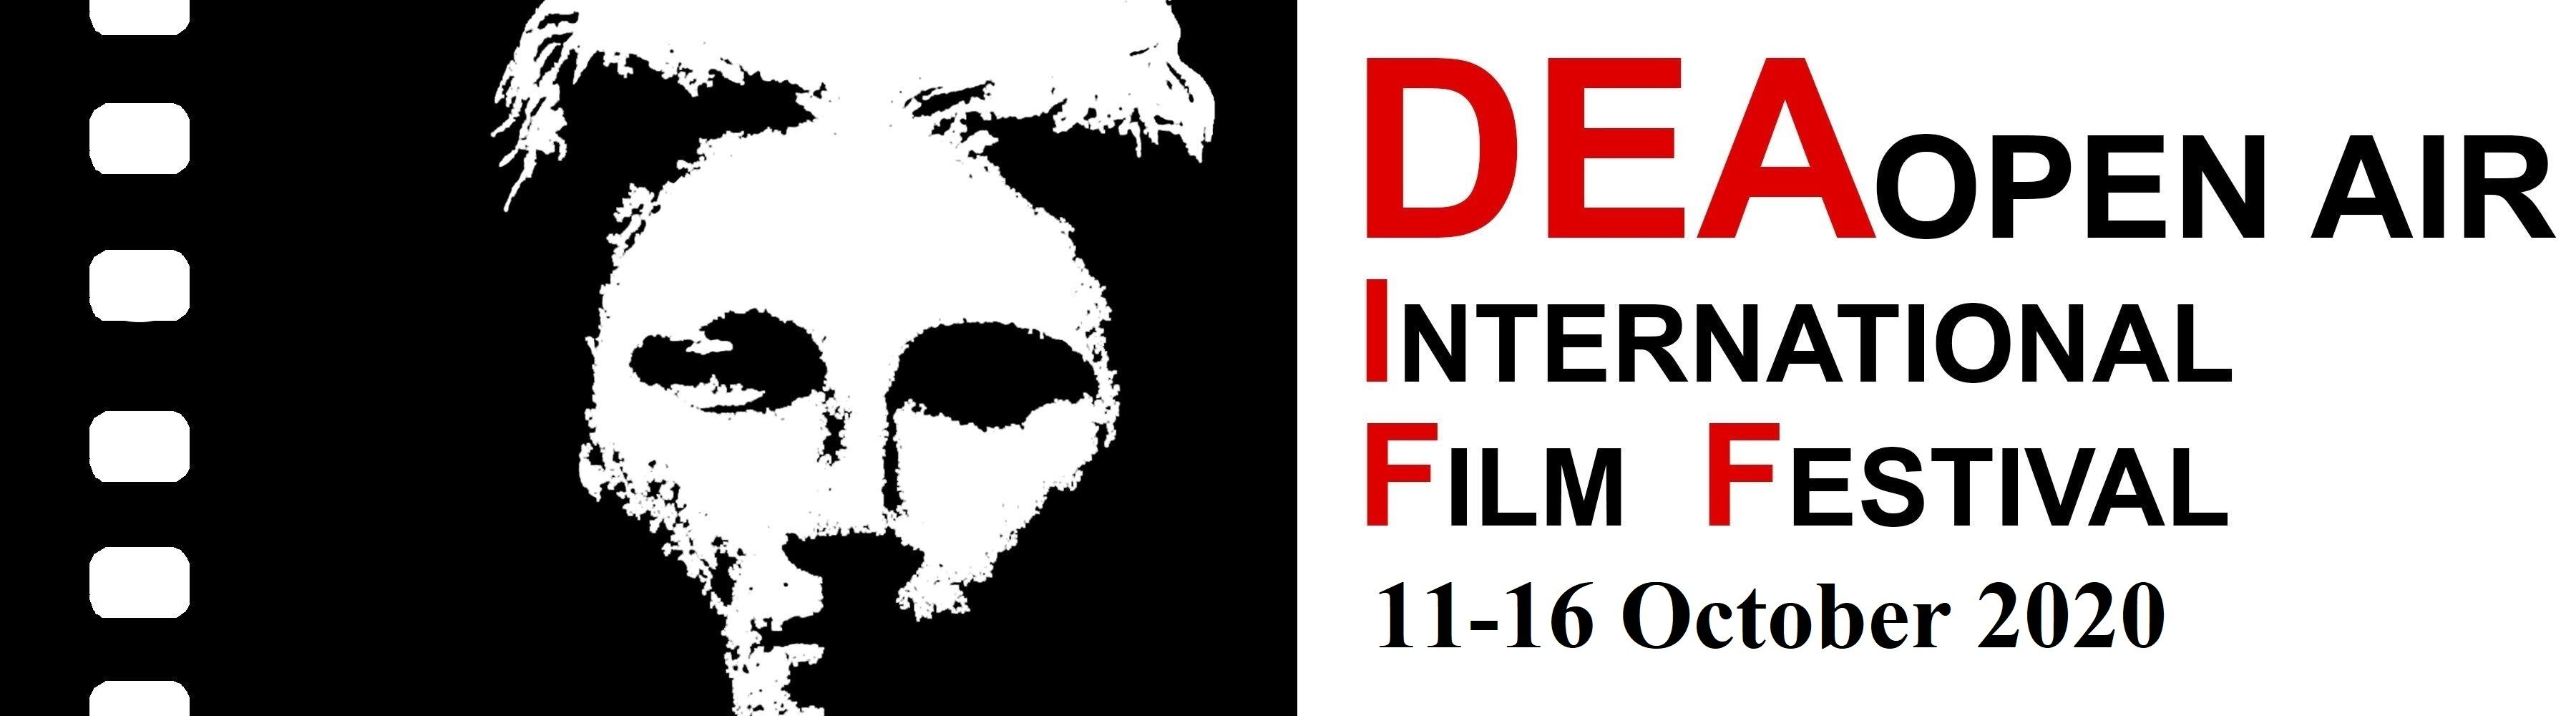 Image for DEA Film Festival